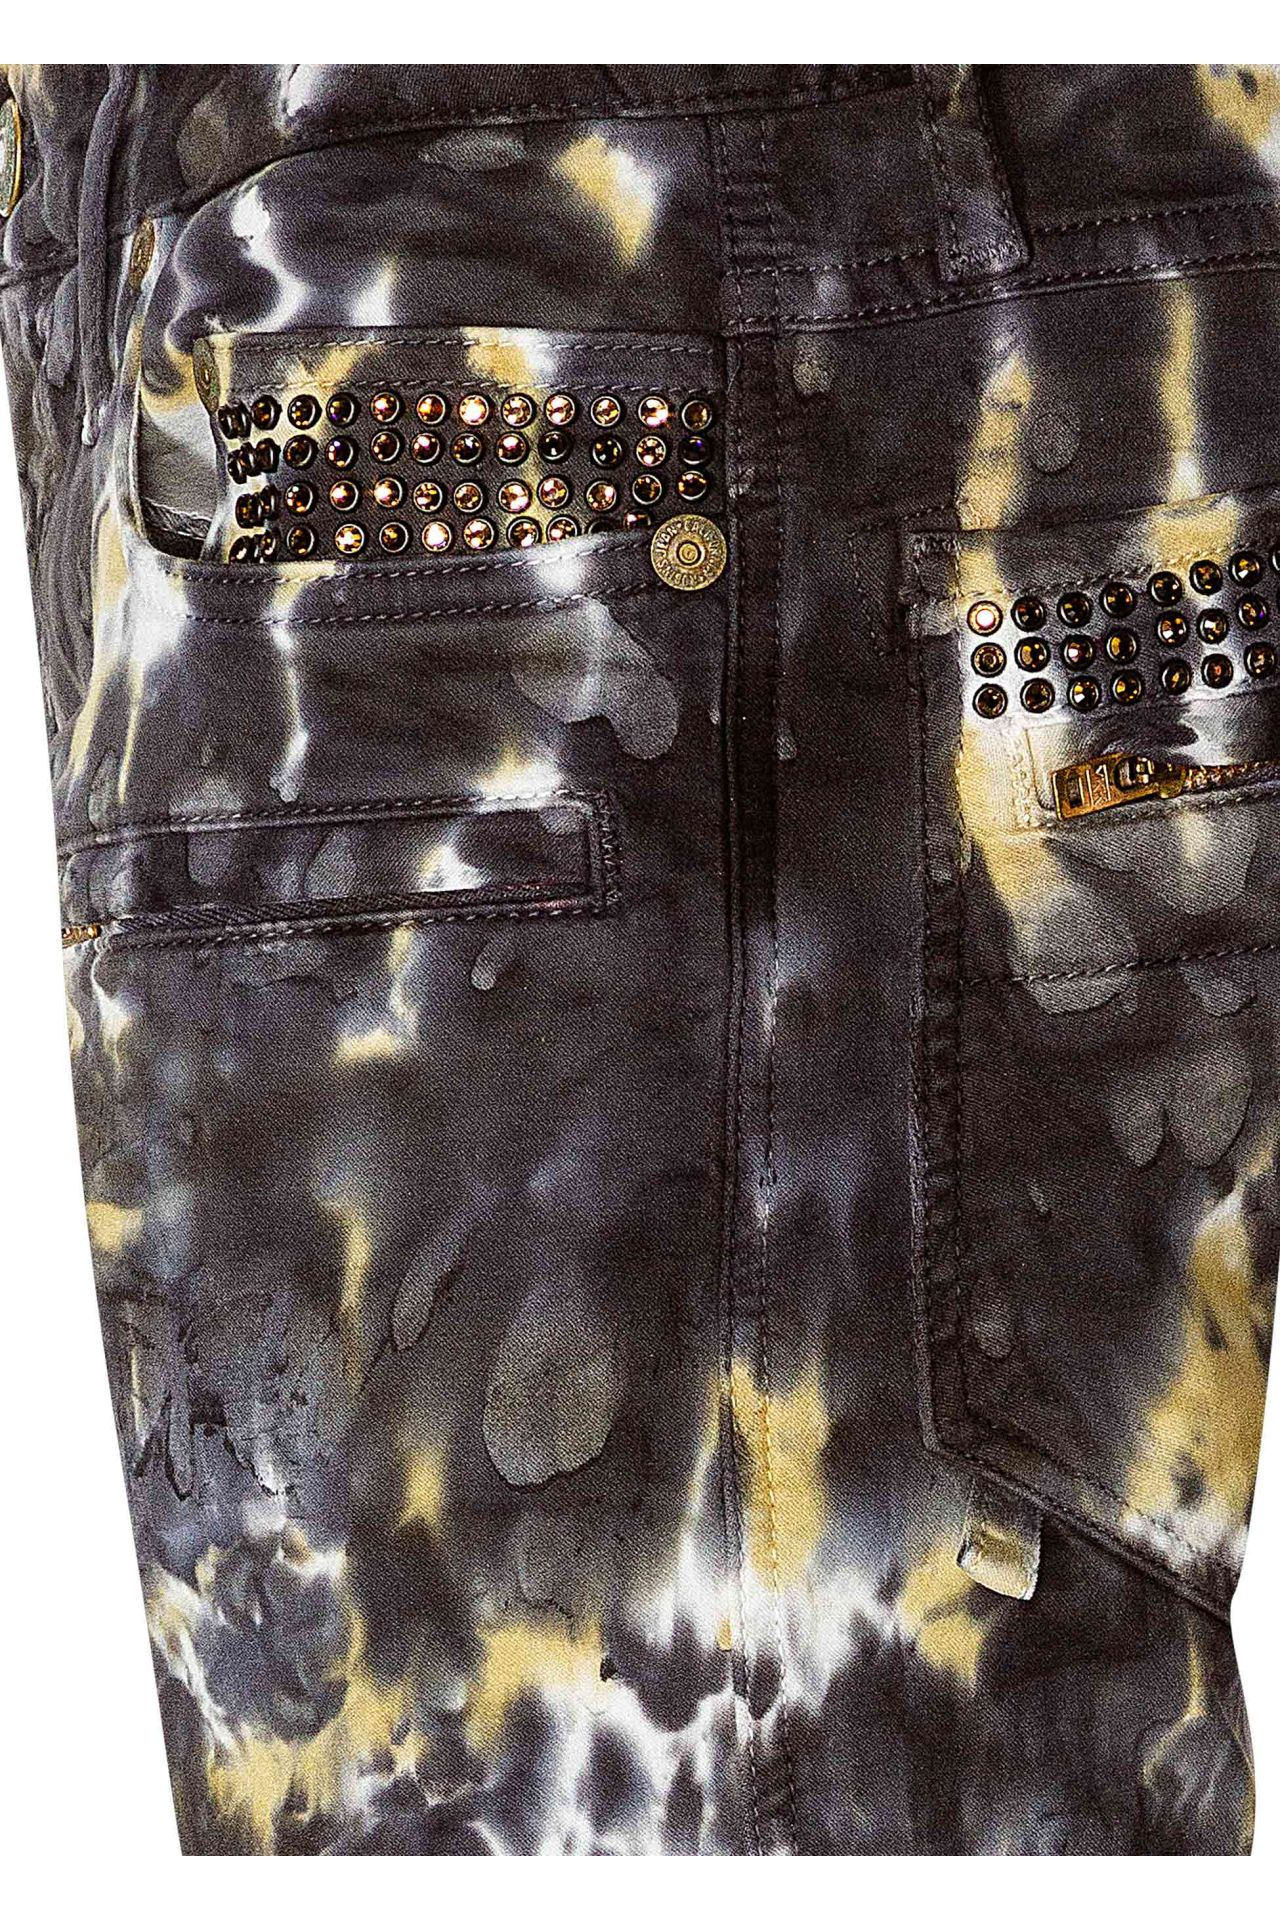 TIE DYE MOTO WITH CRYSTALS